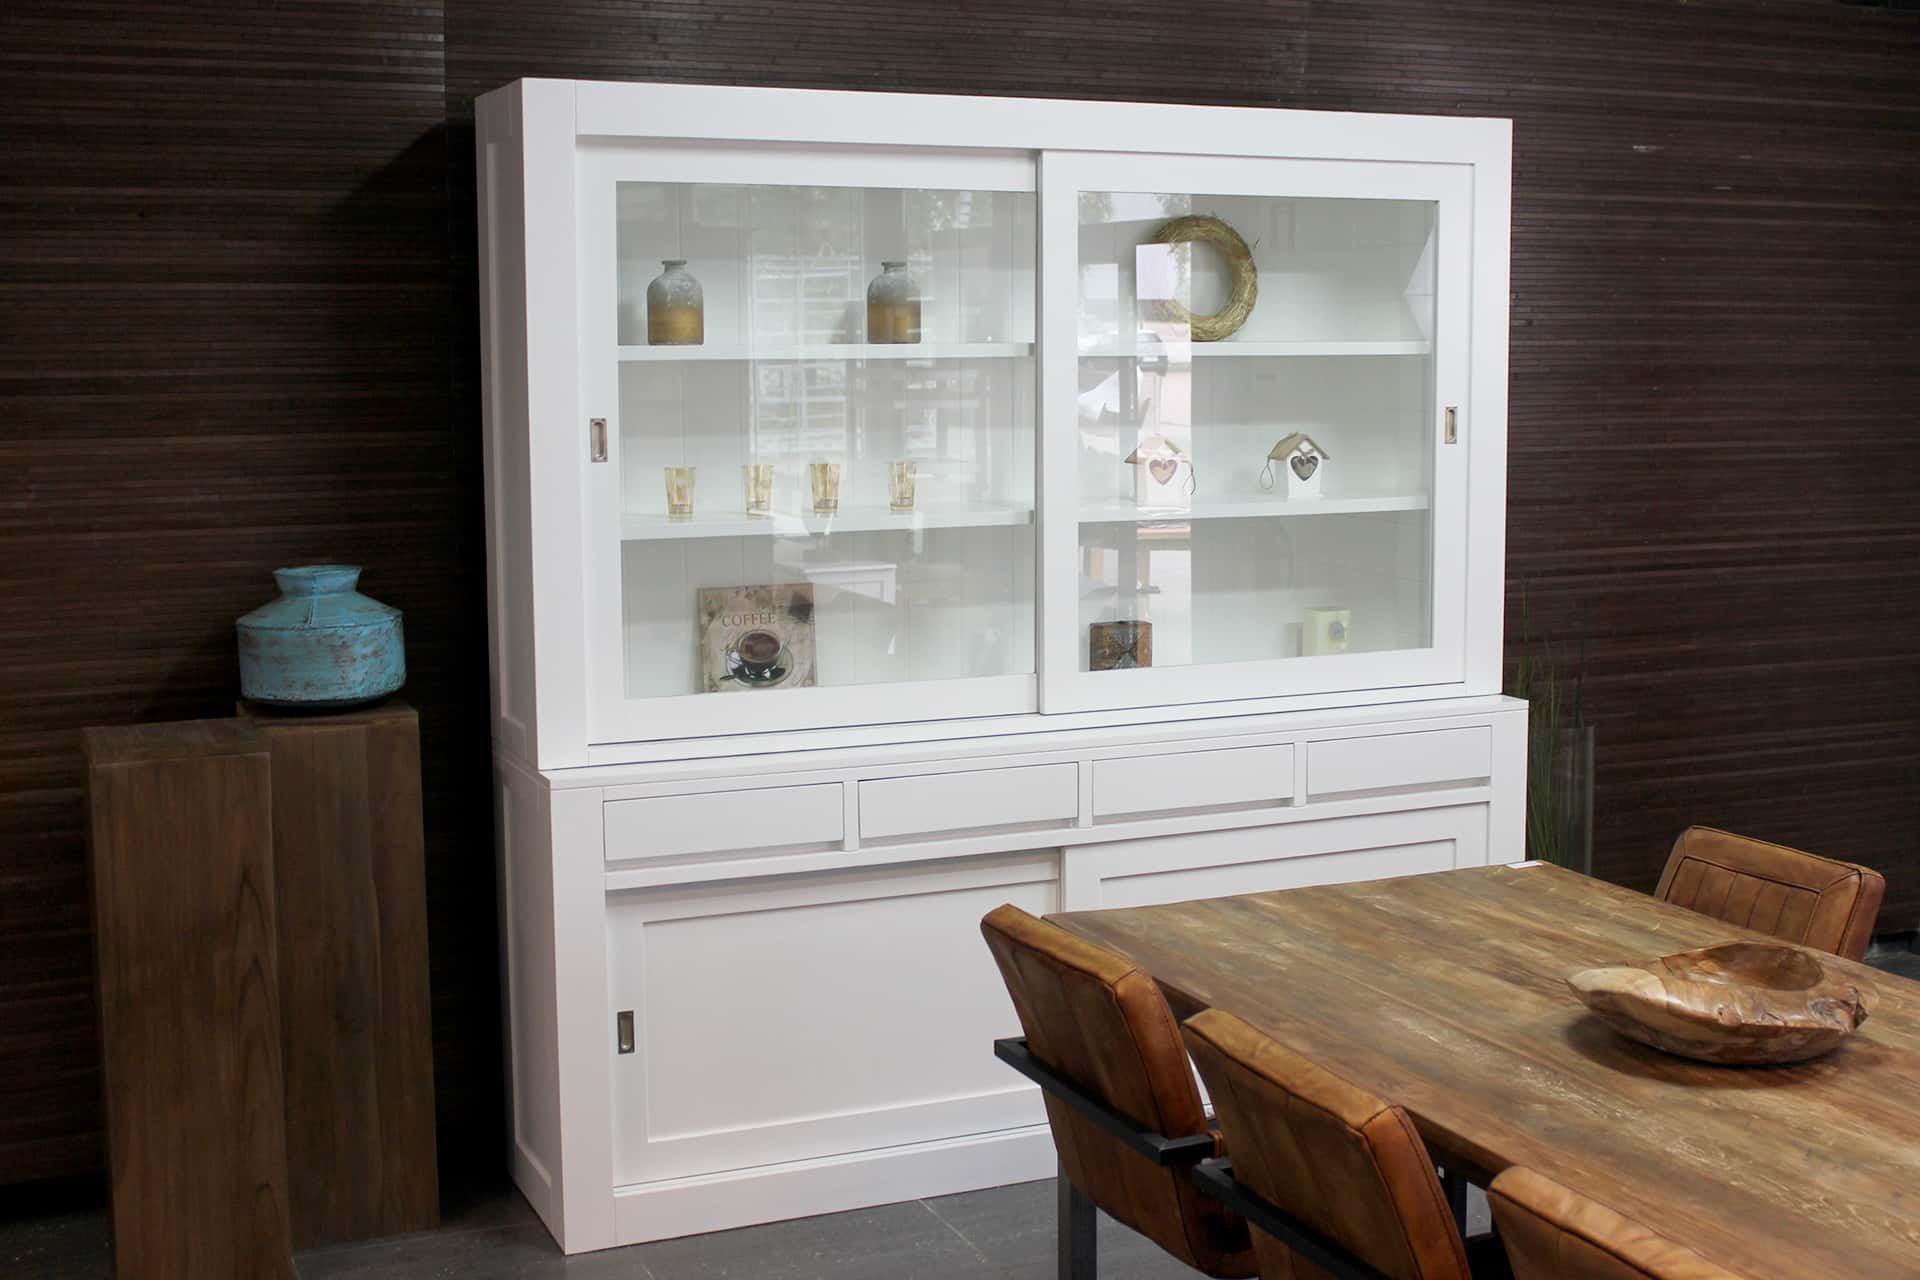 Baru 220L SW | white design buffet cabinet in traffic white RAL 9016. Contemporary display cabinet or design display cabinet in white. Design furniture at TEAK2.